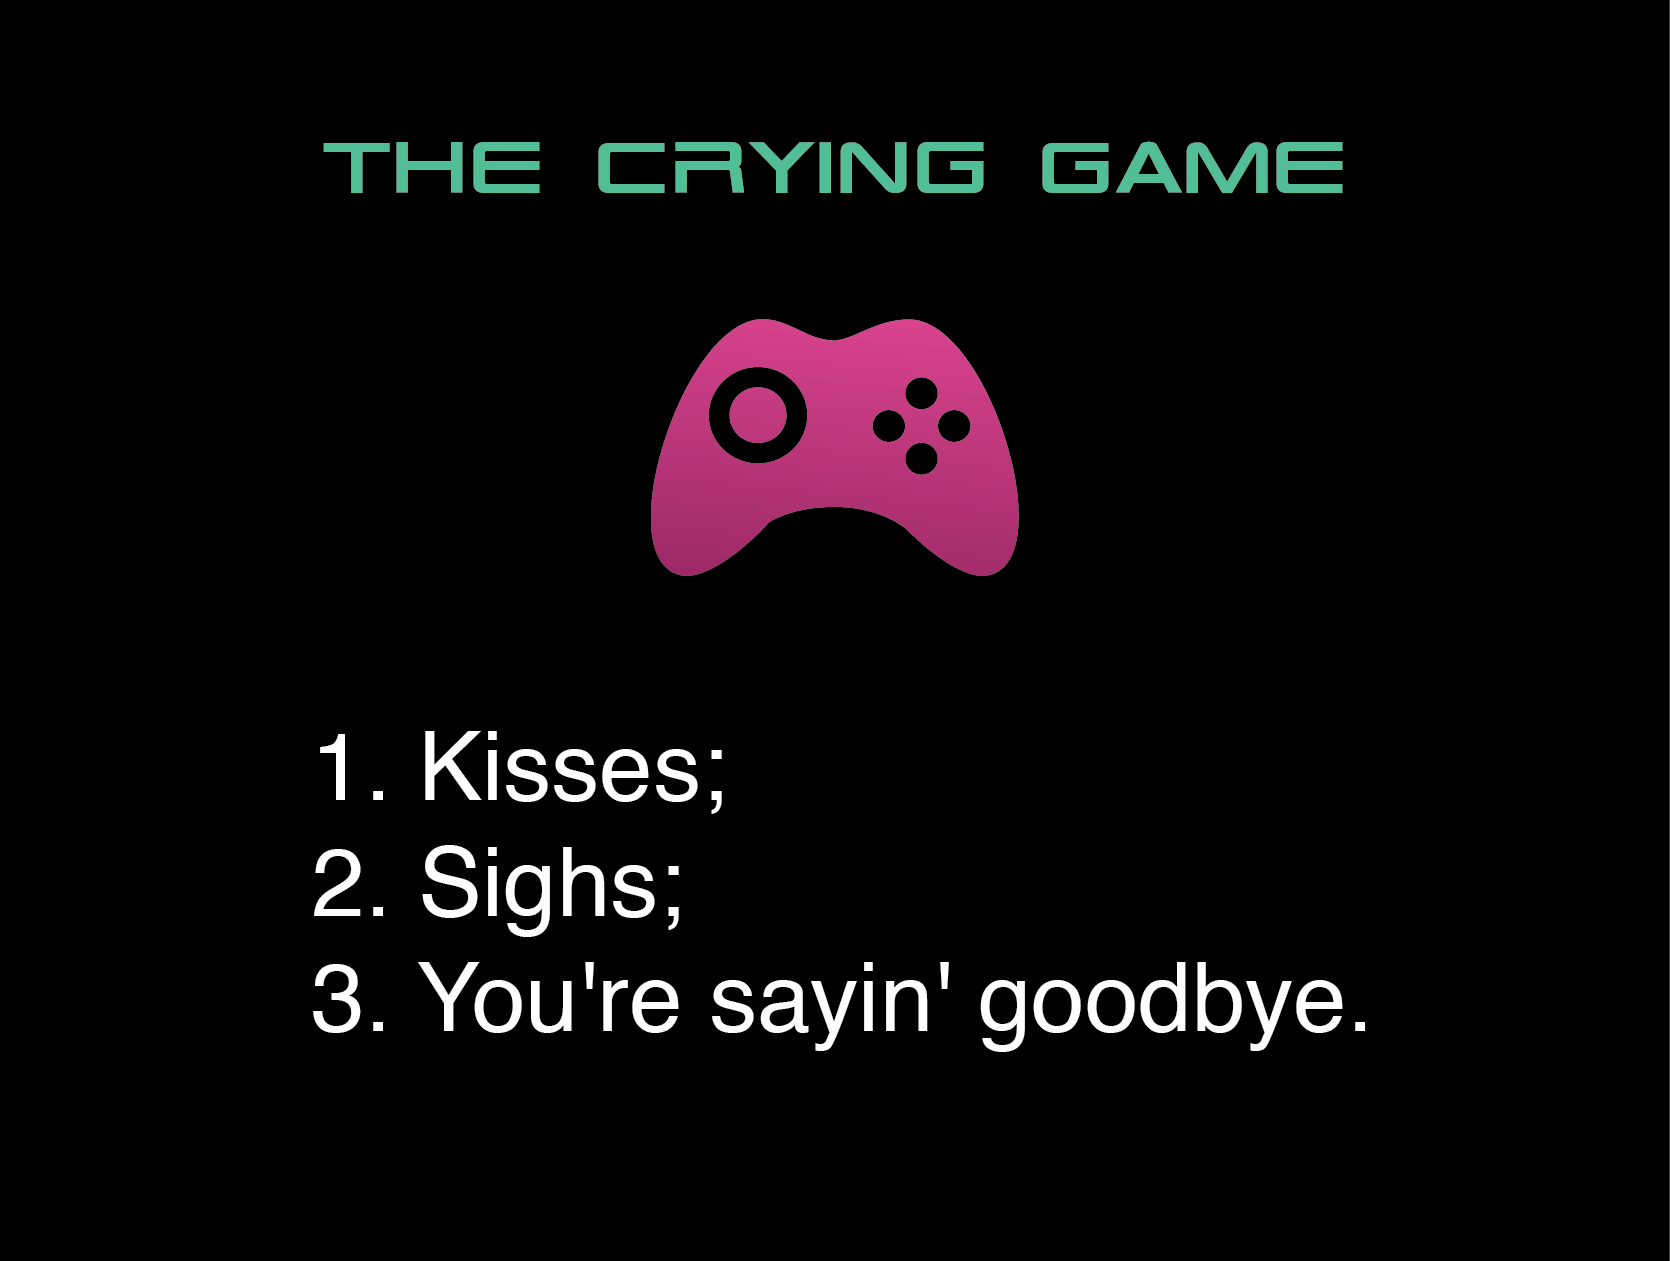 The Crying Game Rules